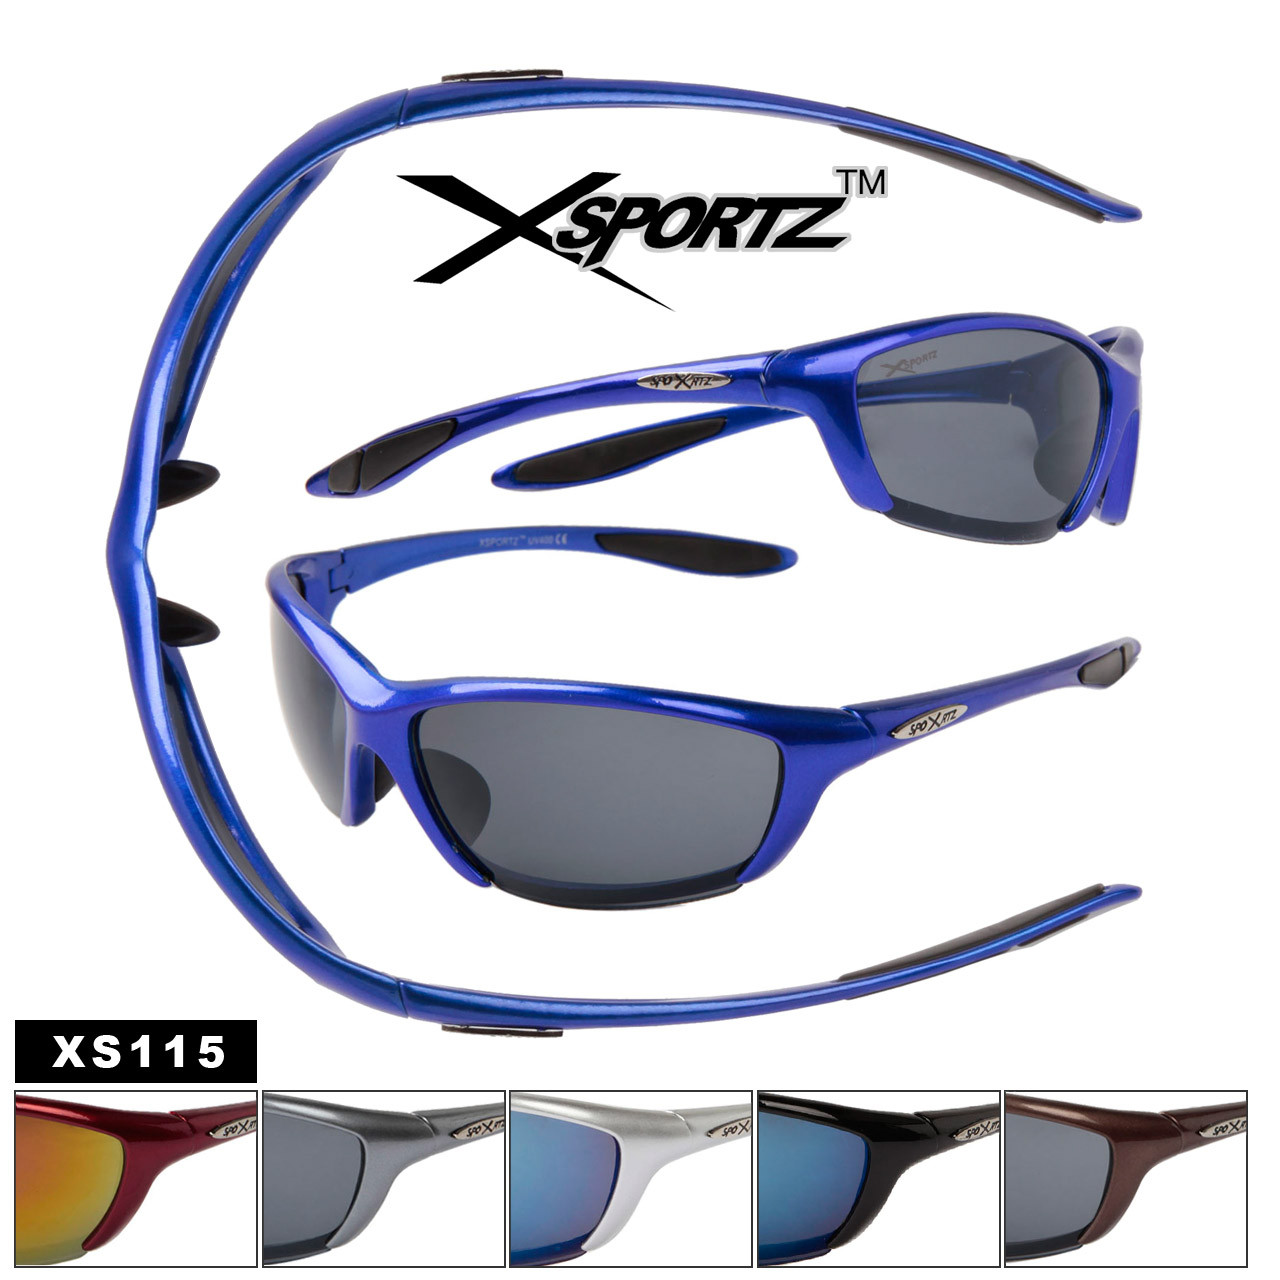 XS115 Wholesale Xsportz Sunglasses